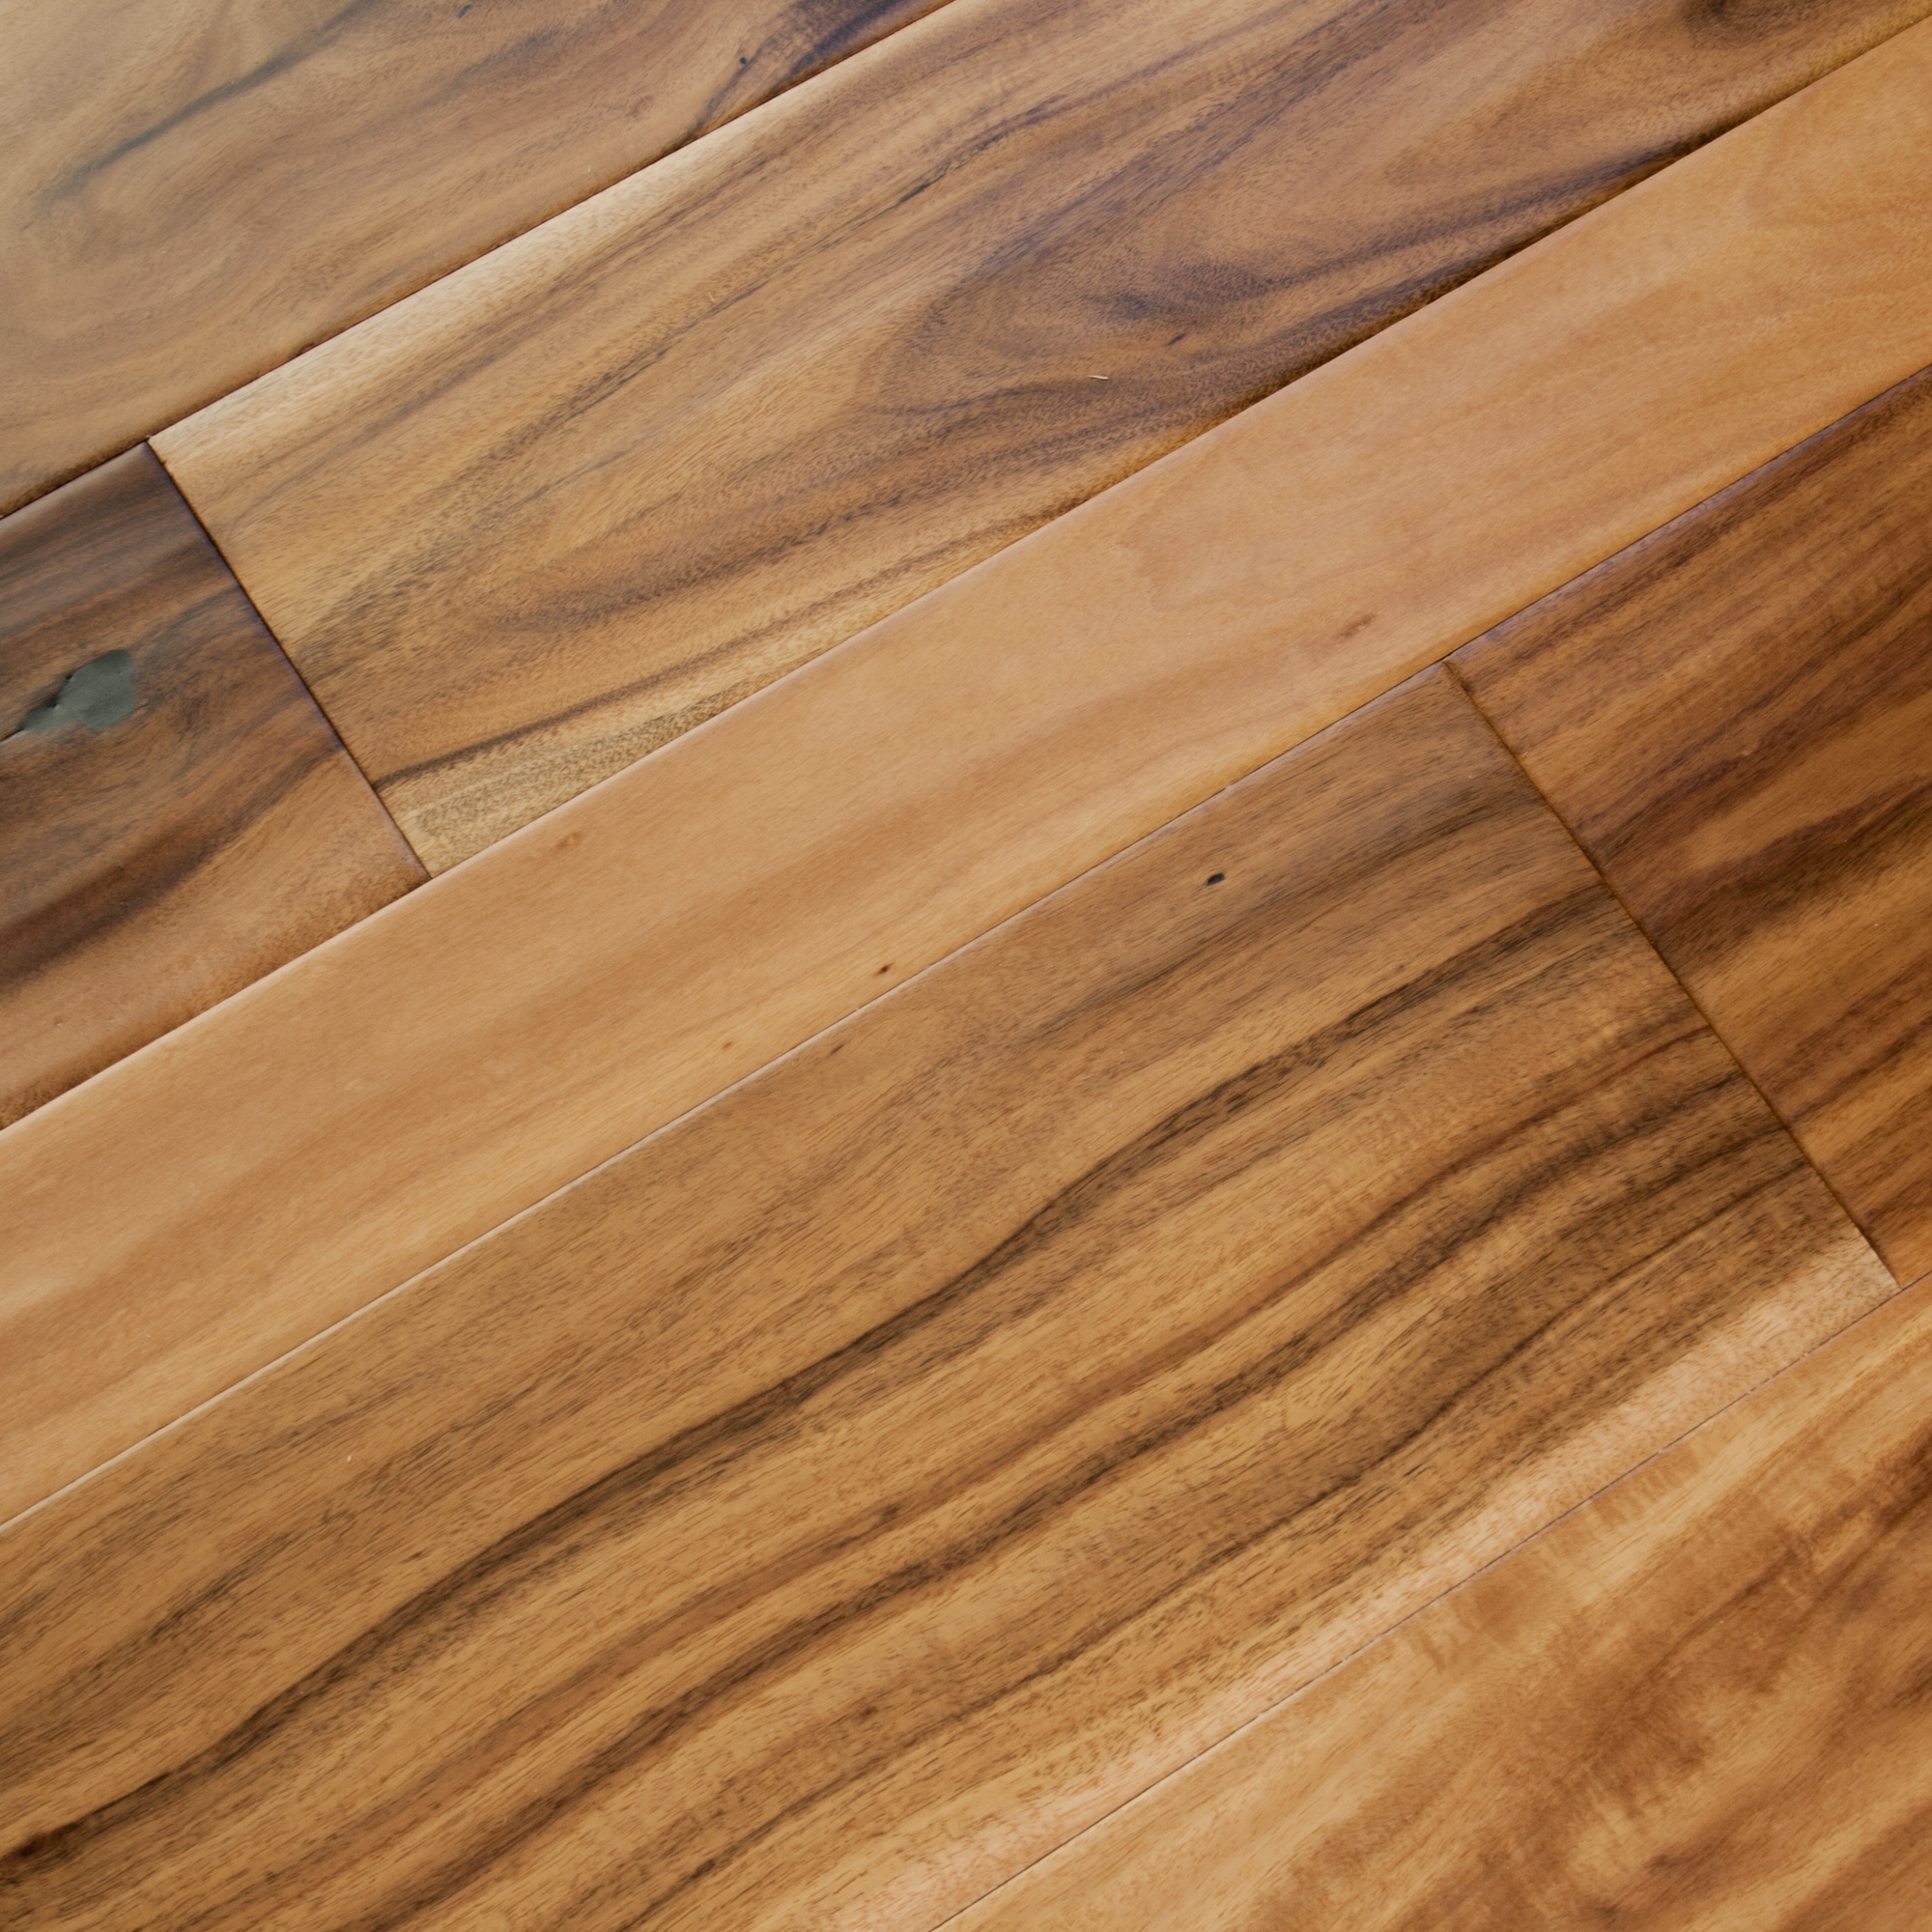 Wood Flooring Product : Artisan acacia natural hand scraped engineered hardwood